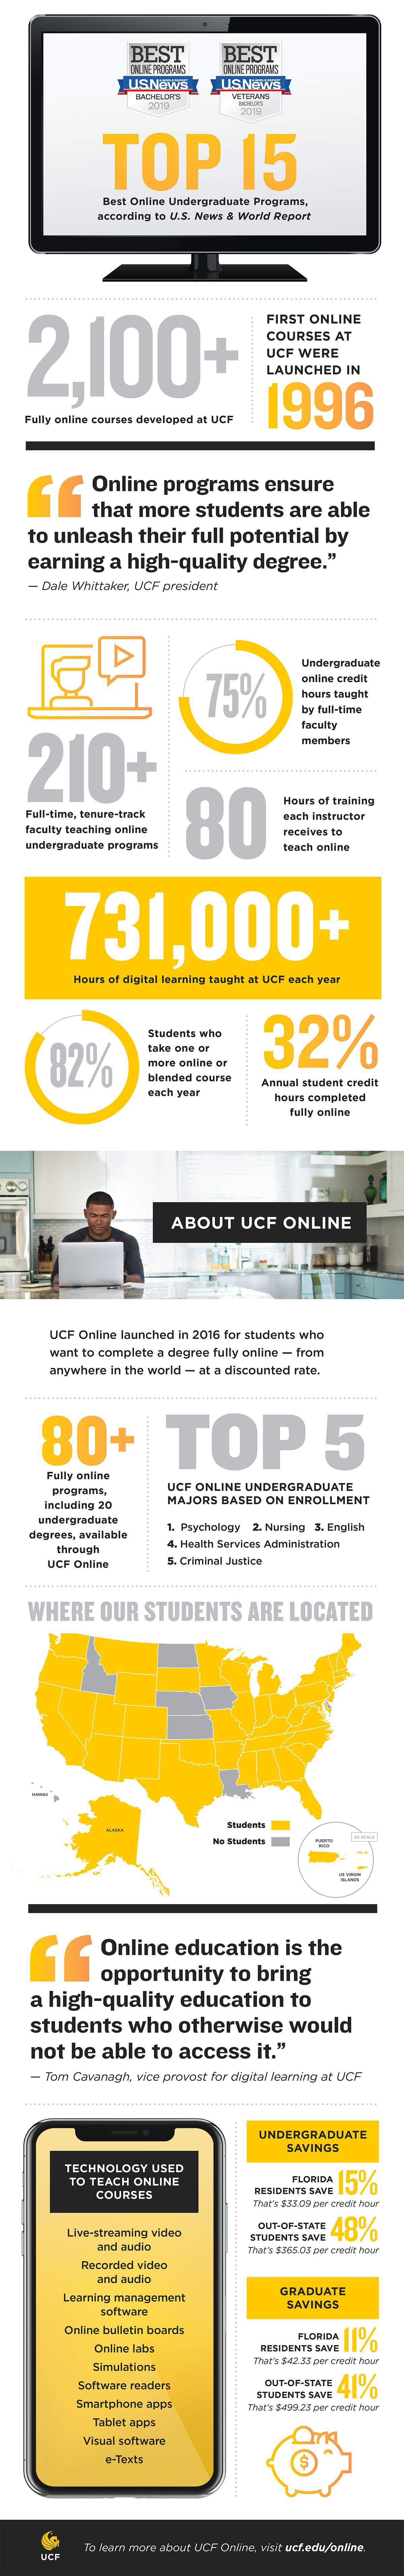 An infographic with numbers and stats about online digital learning at UCF.